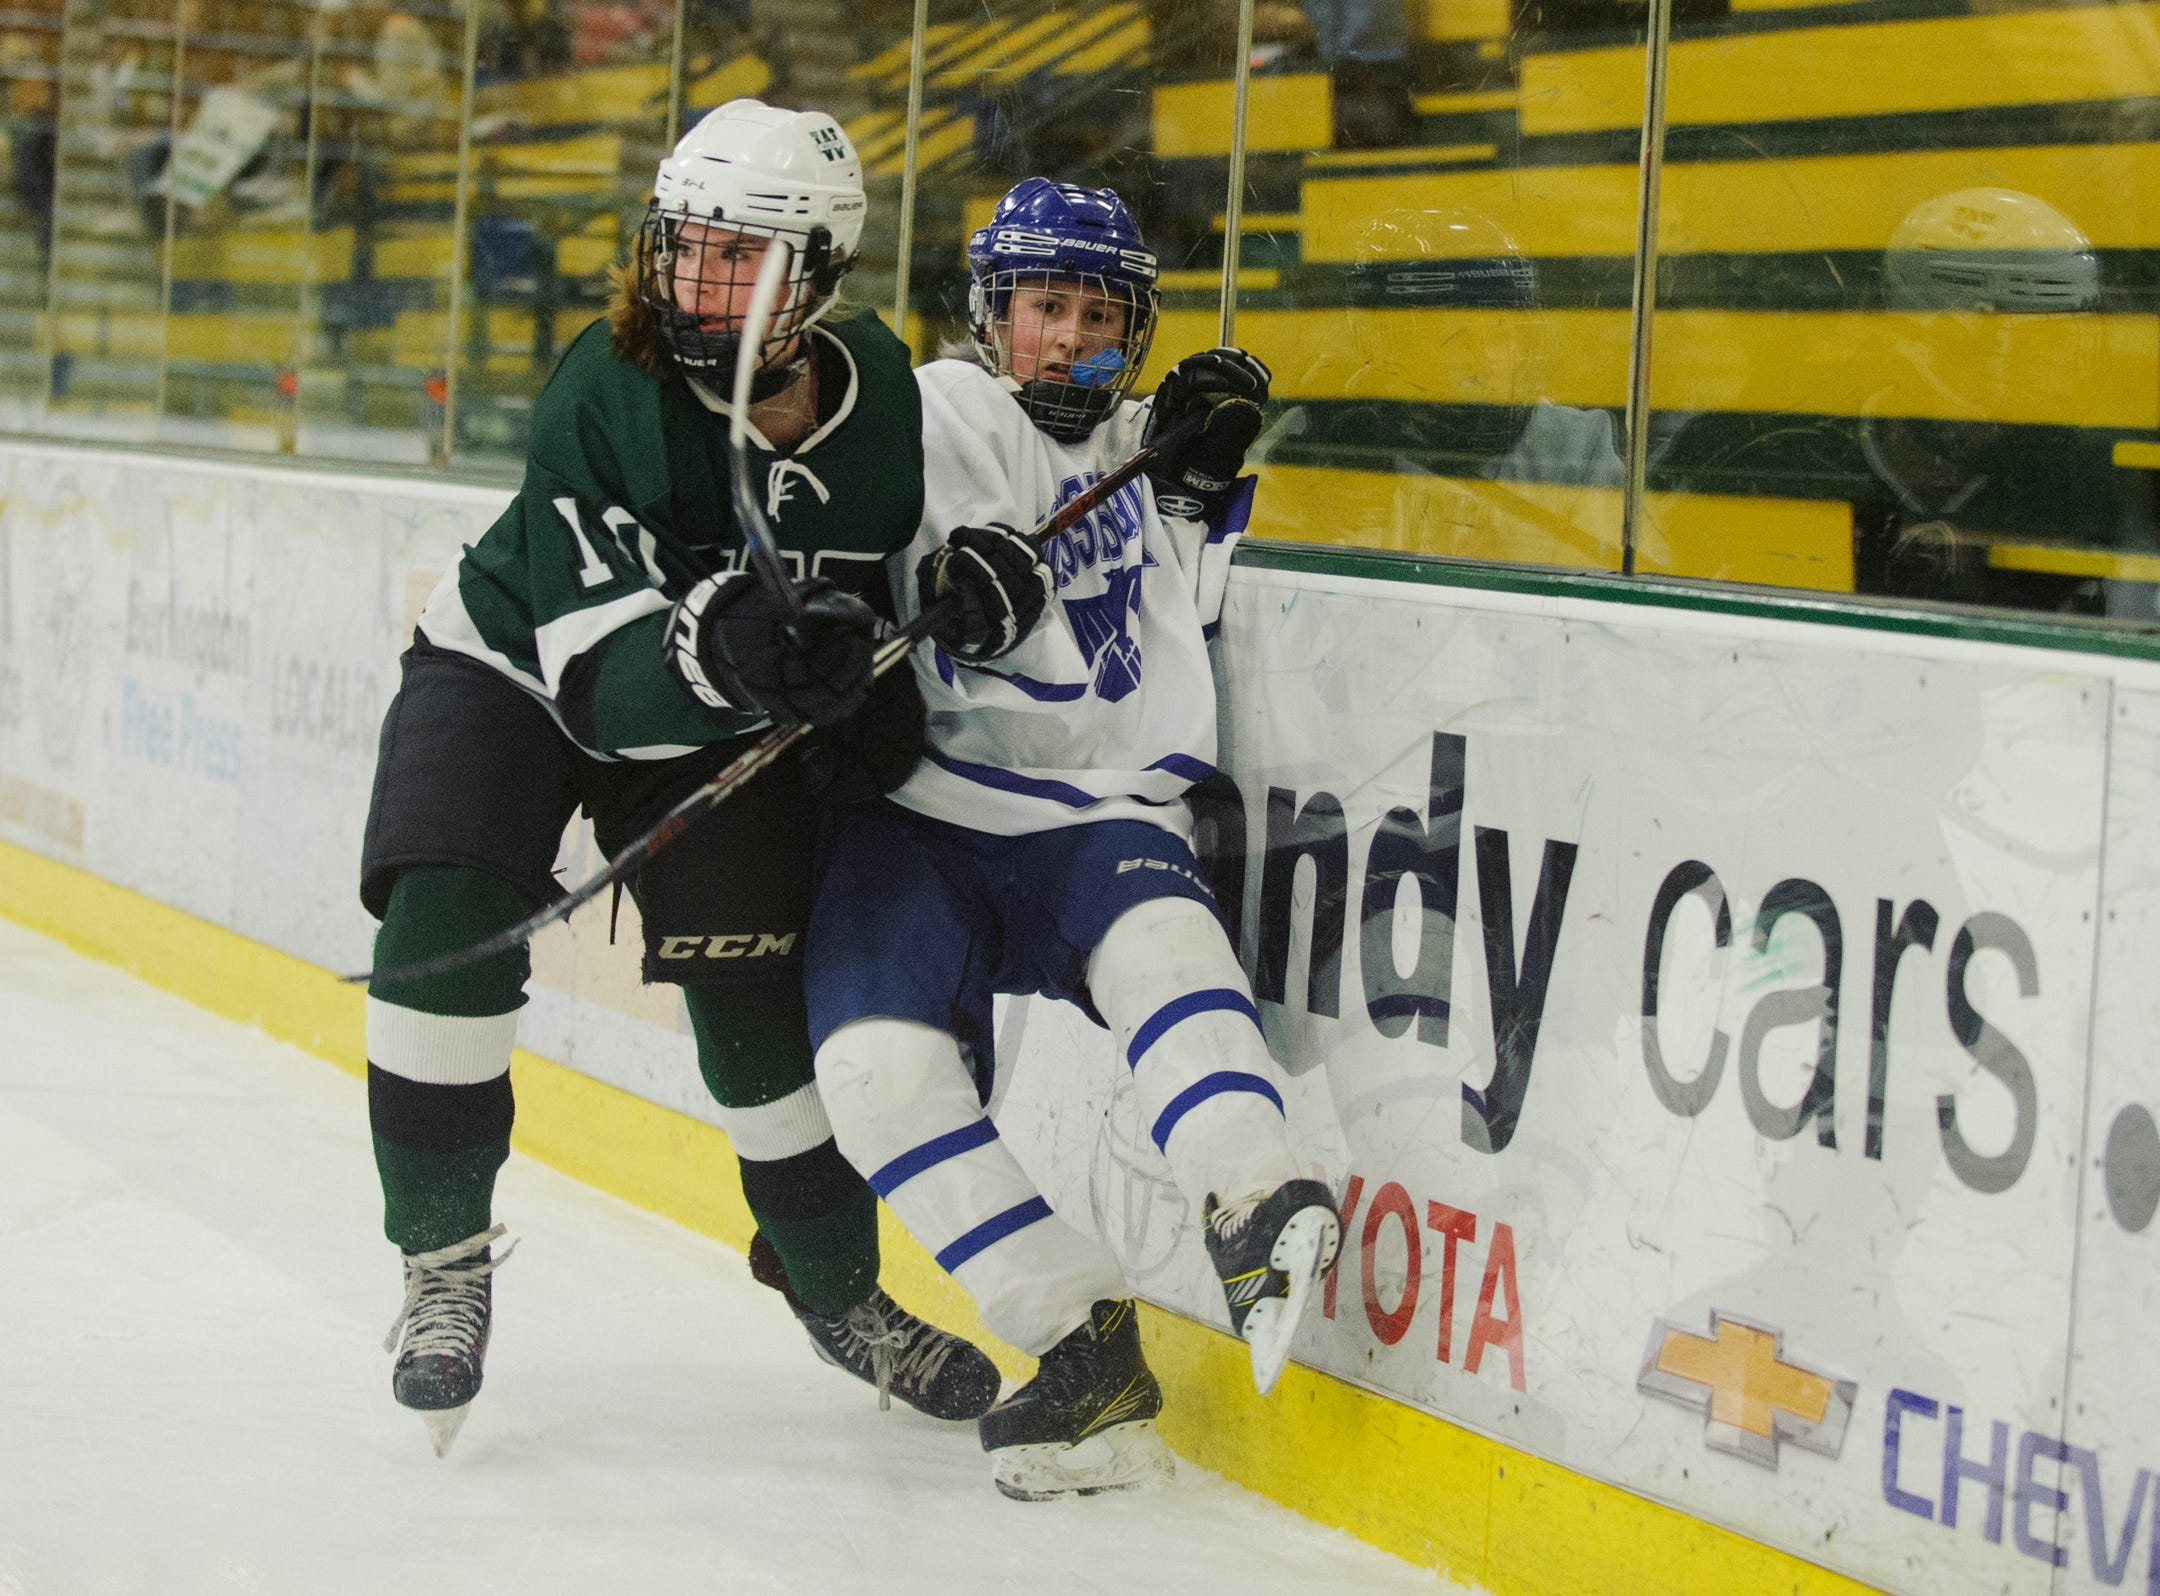 Woodstock's Allie Cimis (10)  checks Missisquoi's Kaley Stefaniak (8) into the boards during the DII girls hockey championship game between the Woodstock Wasps and the Missisquoi Thunderbirds at Gutterson Field House on Thursday night March 14, 2019 in Burlington, Vermont.